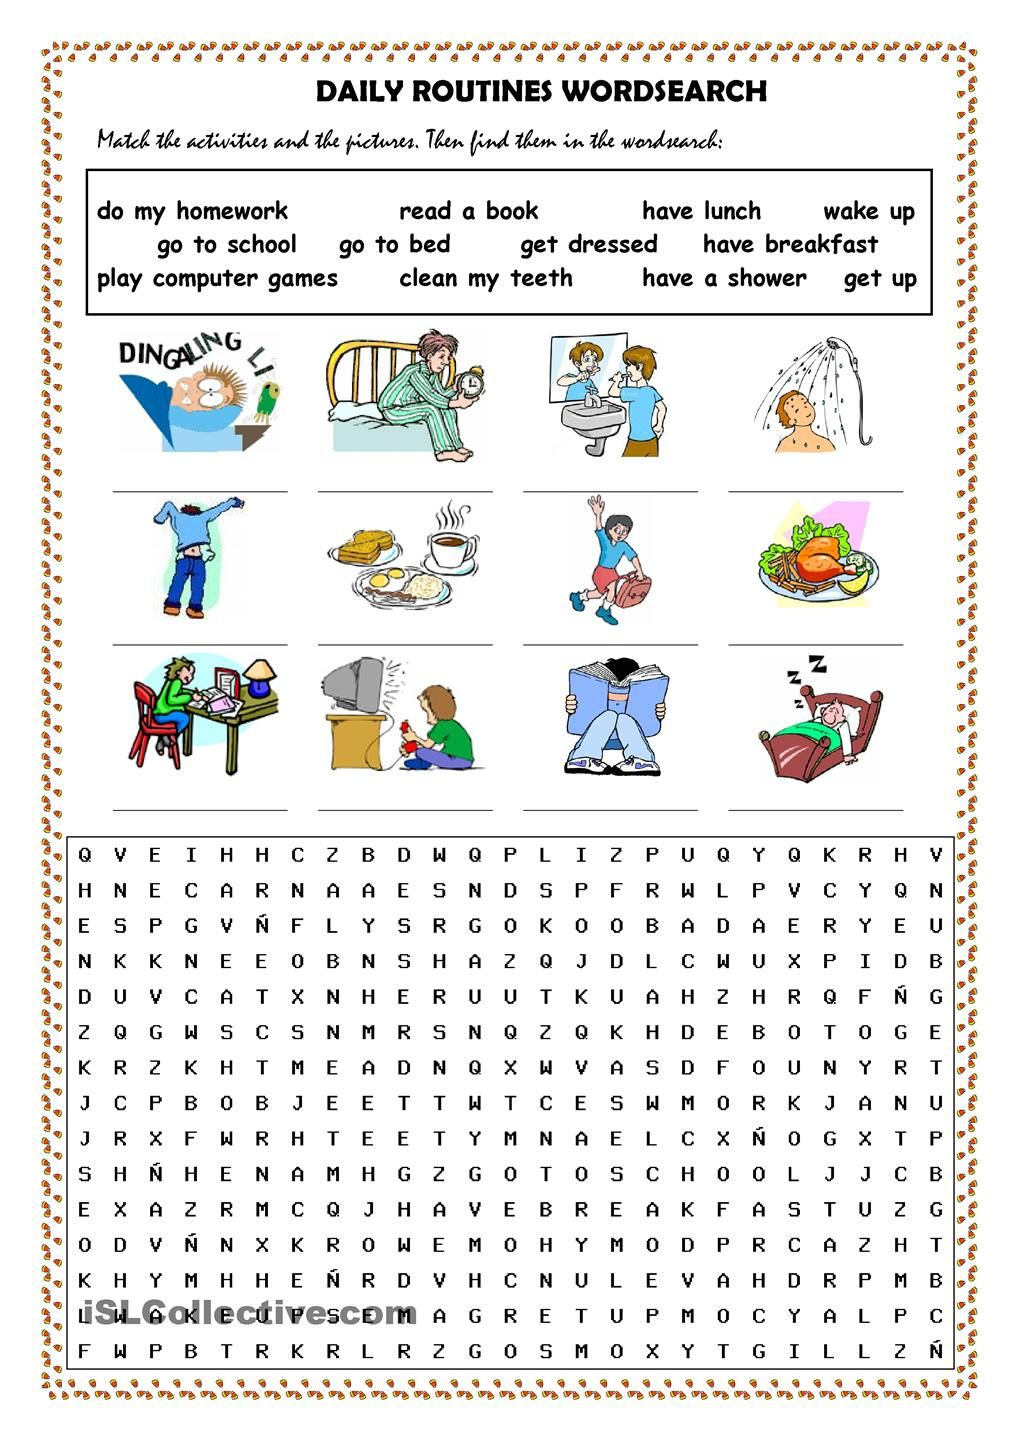 Daily routines picture dictionary and wordsearch